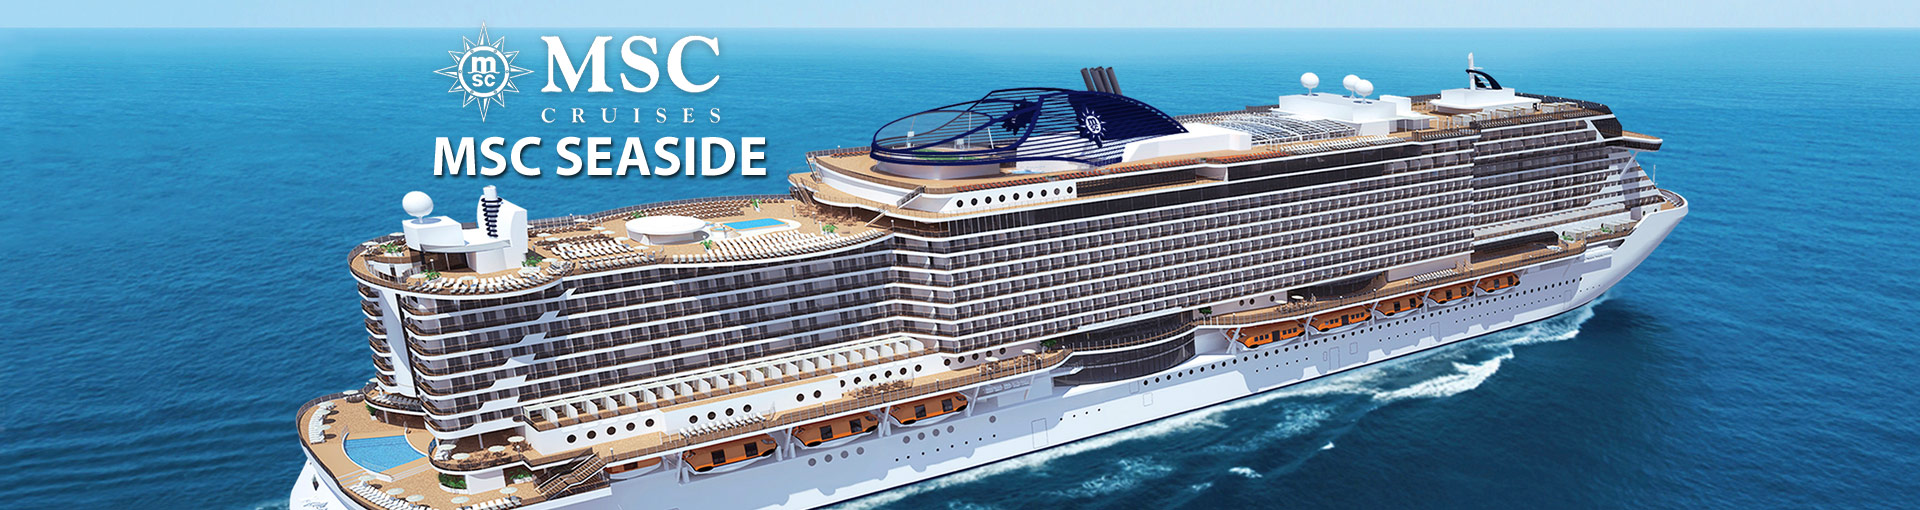 msc-seaside-the-new-largest-aircraft-of-20171